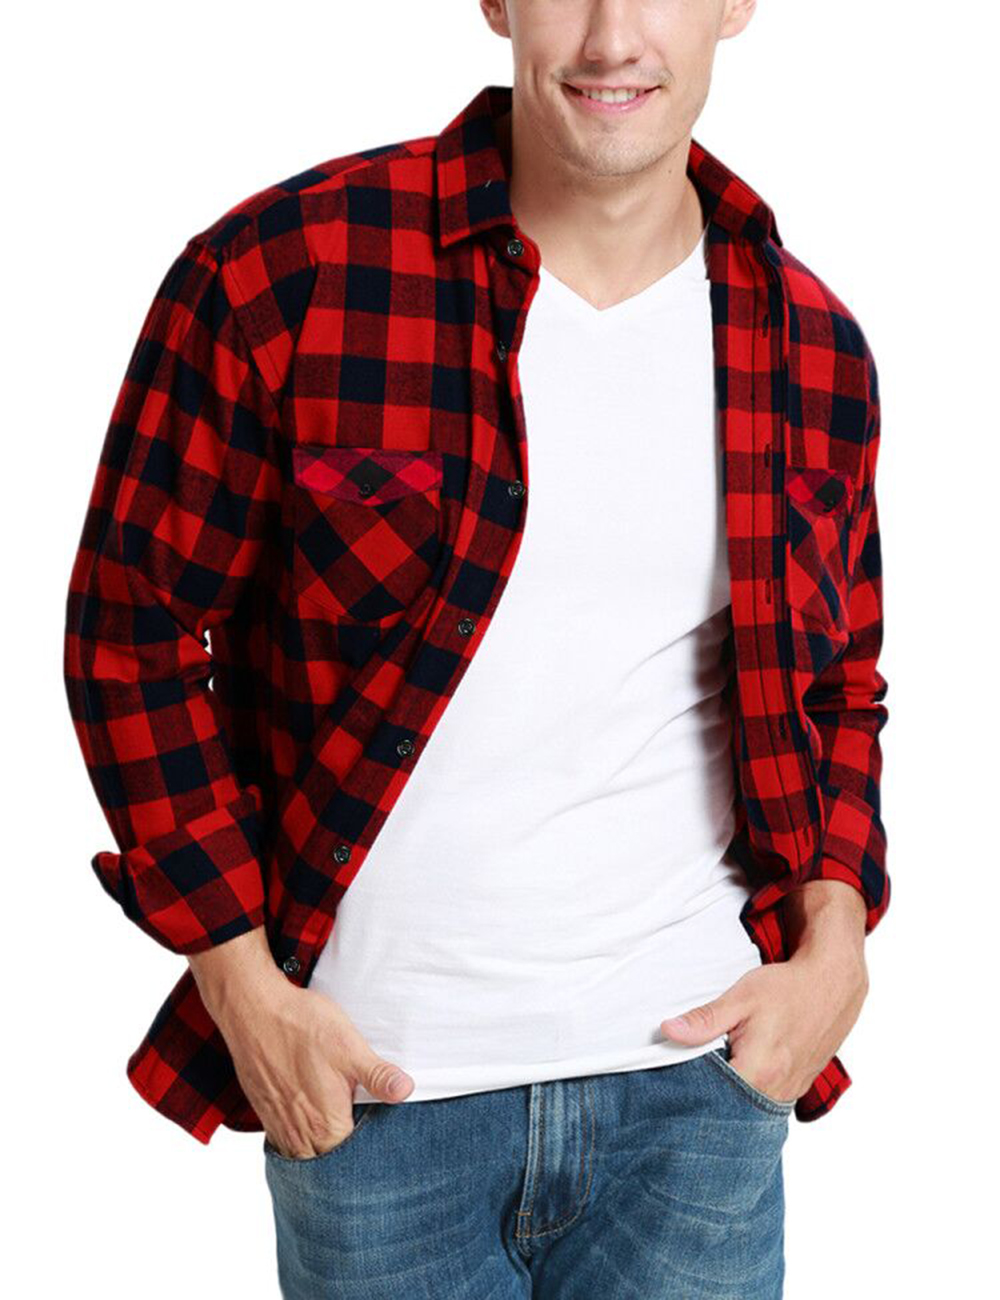 Dioufond Mens Pocket Flannel Plaid Cotton Shirt Long Sleeve Checkered Casual Slim Fit Black Warm Autumn Winter Shirts New 1